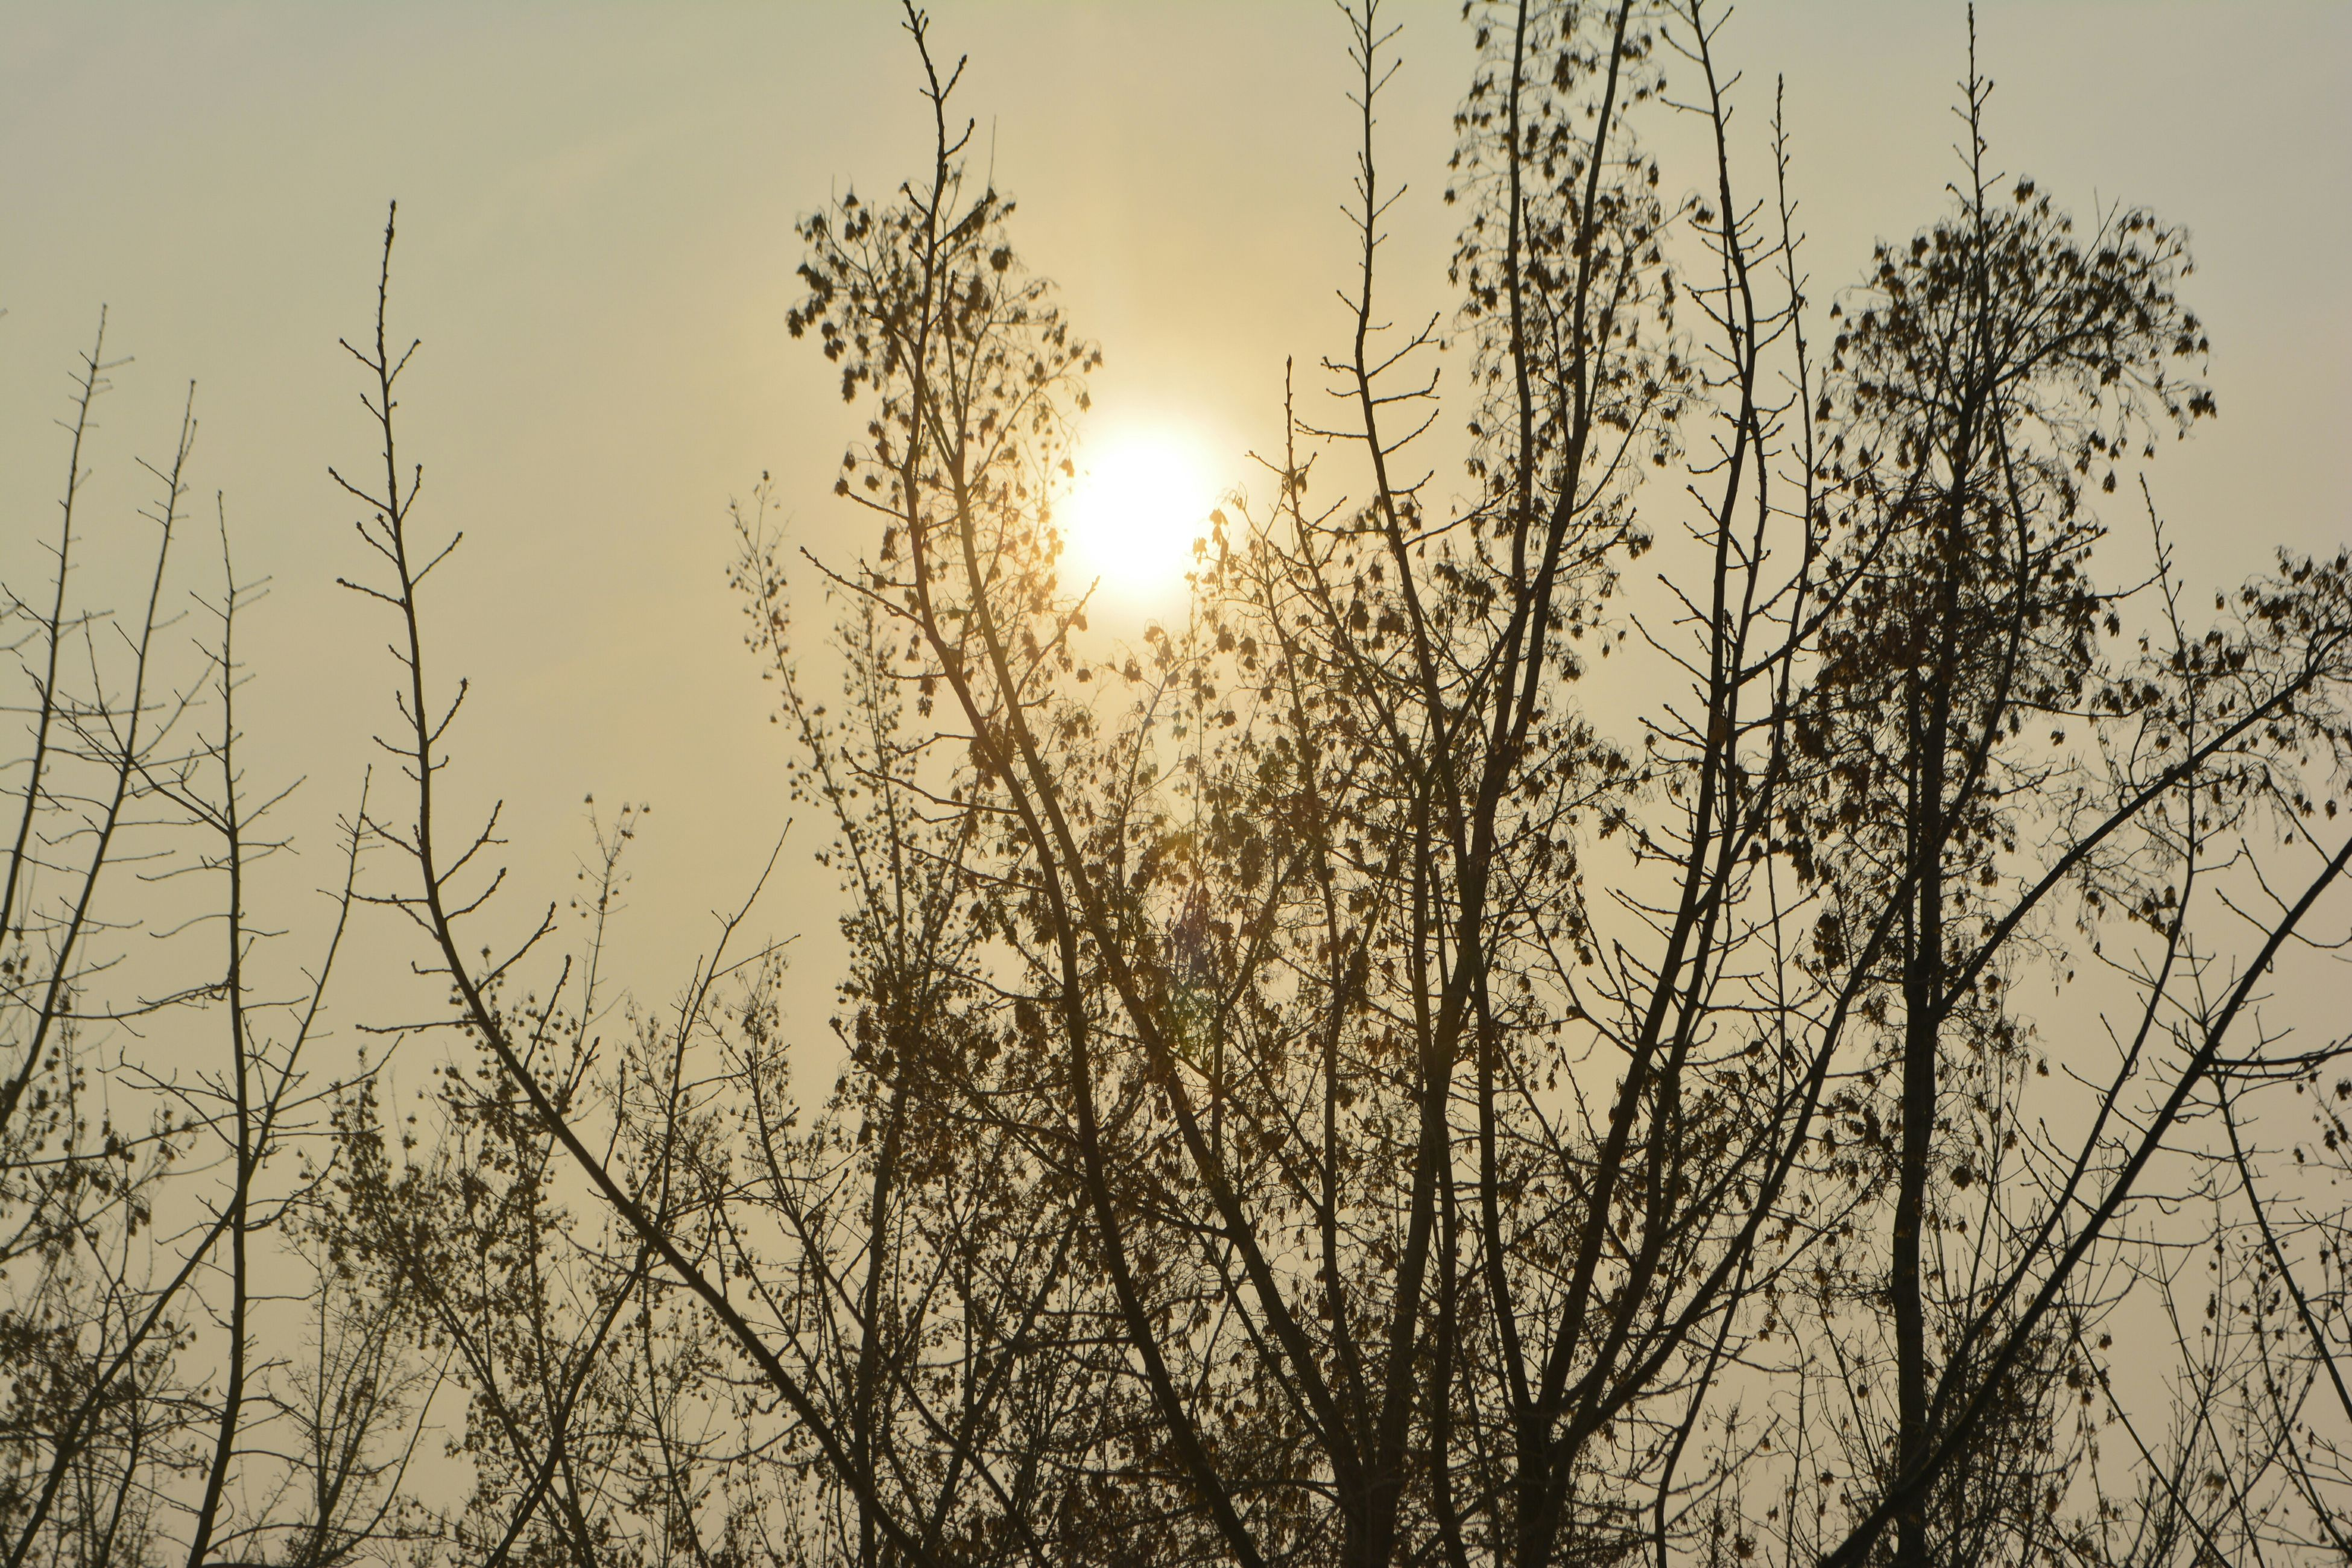 sun, sunset, silhouette, tranquility, tree, beauty in nature, sunlight, branch, tranquil scene, nature, bare tree, sky, scenics, sunbeam, lens flare, growth, low angle view, clear sky, back lit, outdoors